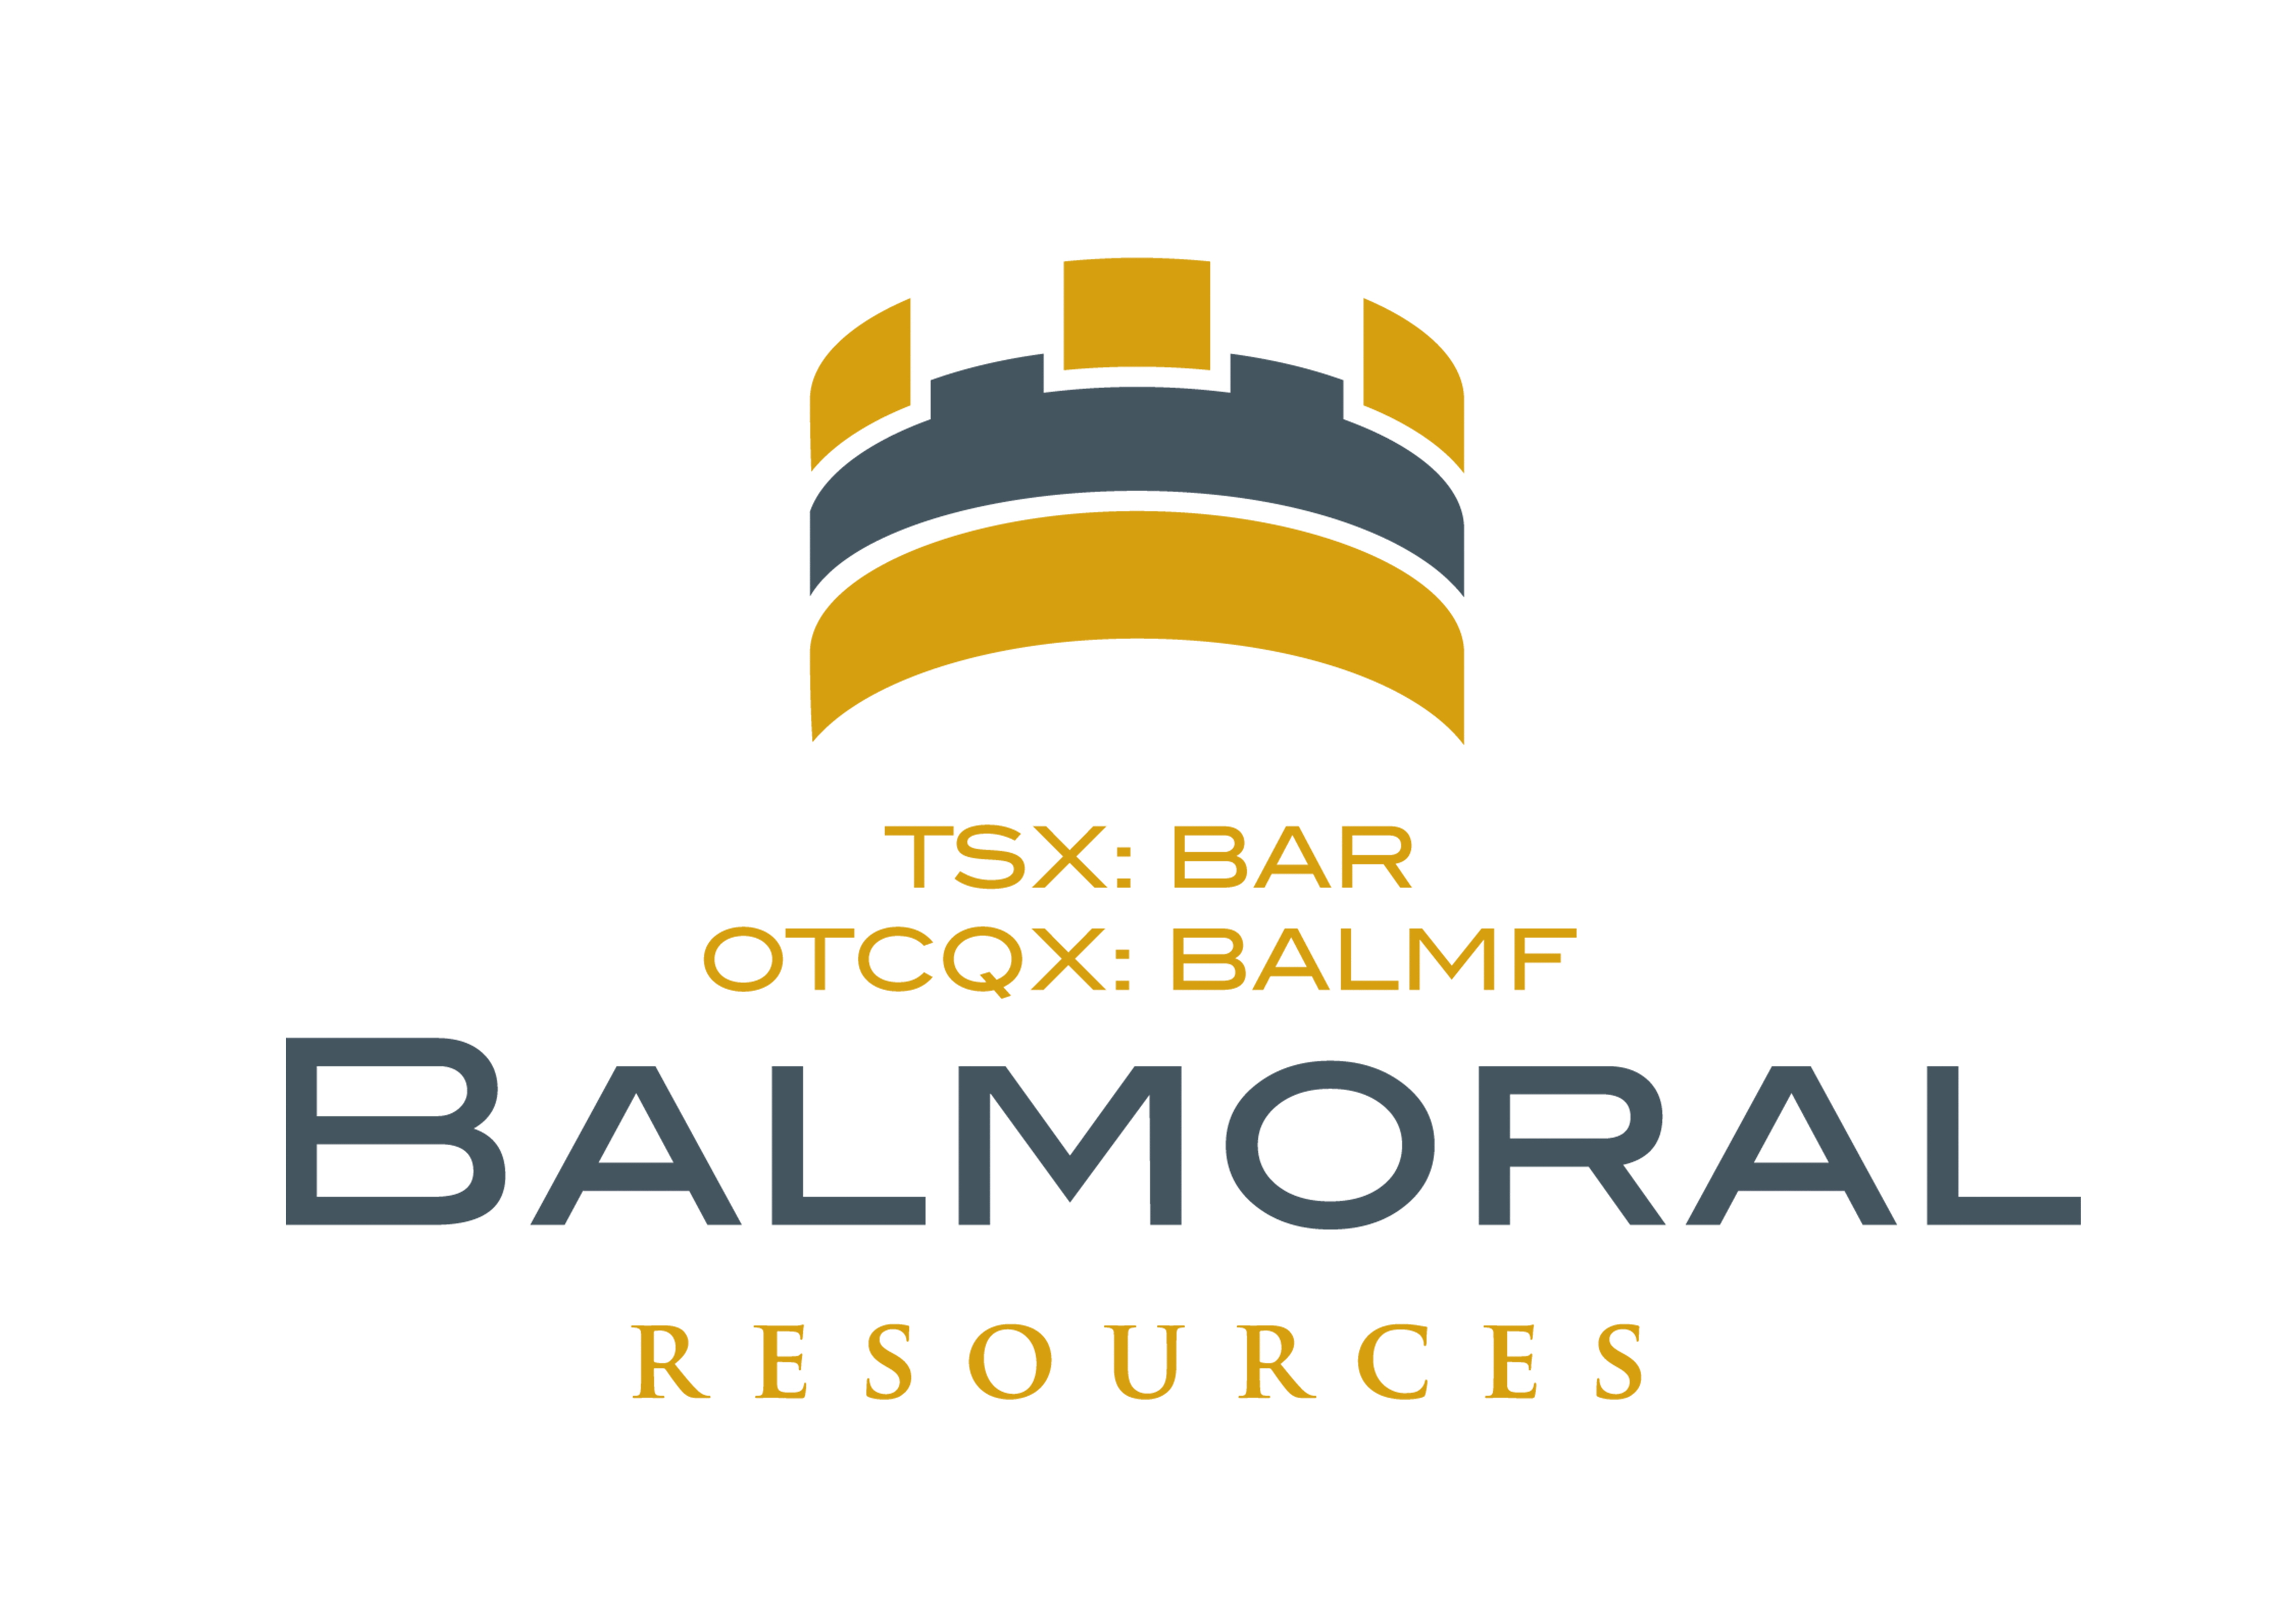 Balmoral Announces Closing of First Tranche of Non-Brokered Private Placement for Gross Proceeds of $1